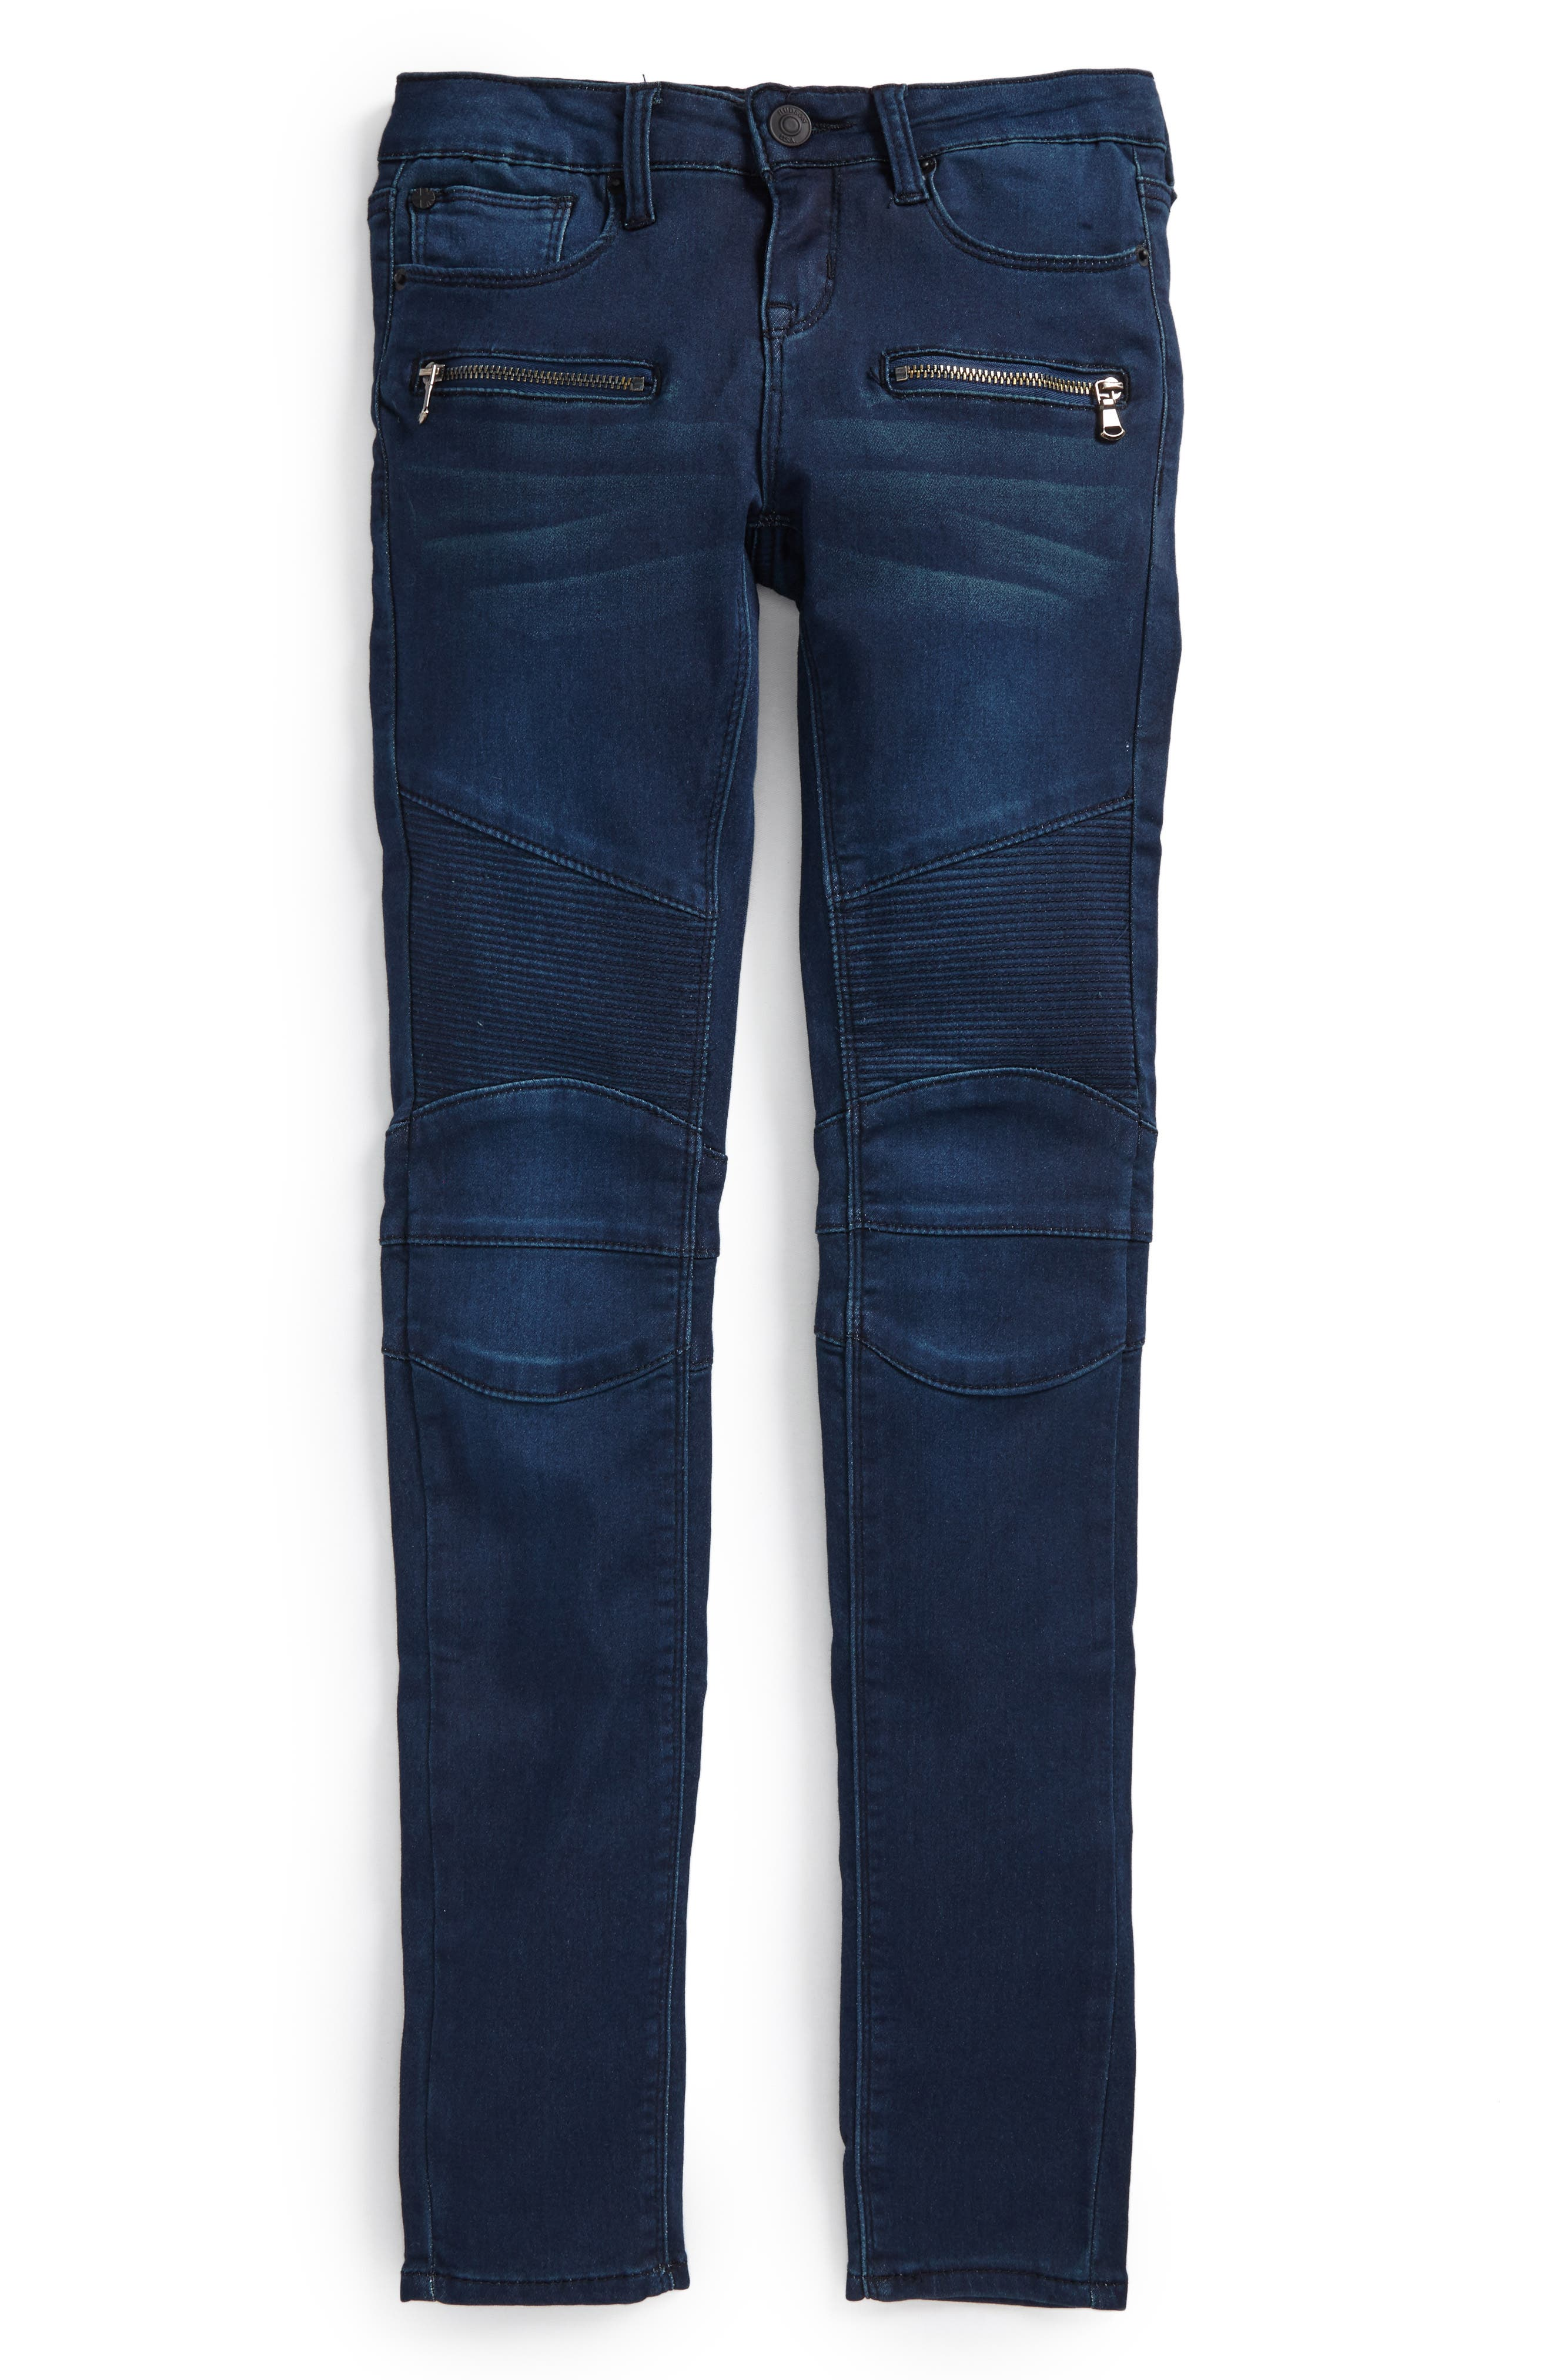 Alternate Image 1 Selected - Hudson Kids French Terry Moto Jeans (Big Girls)